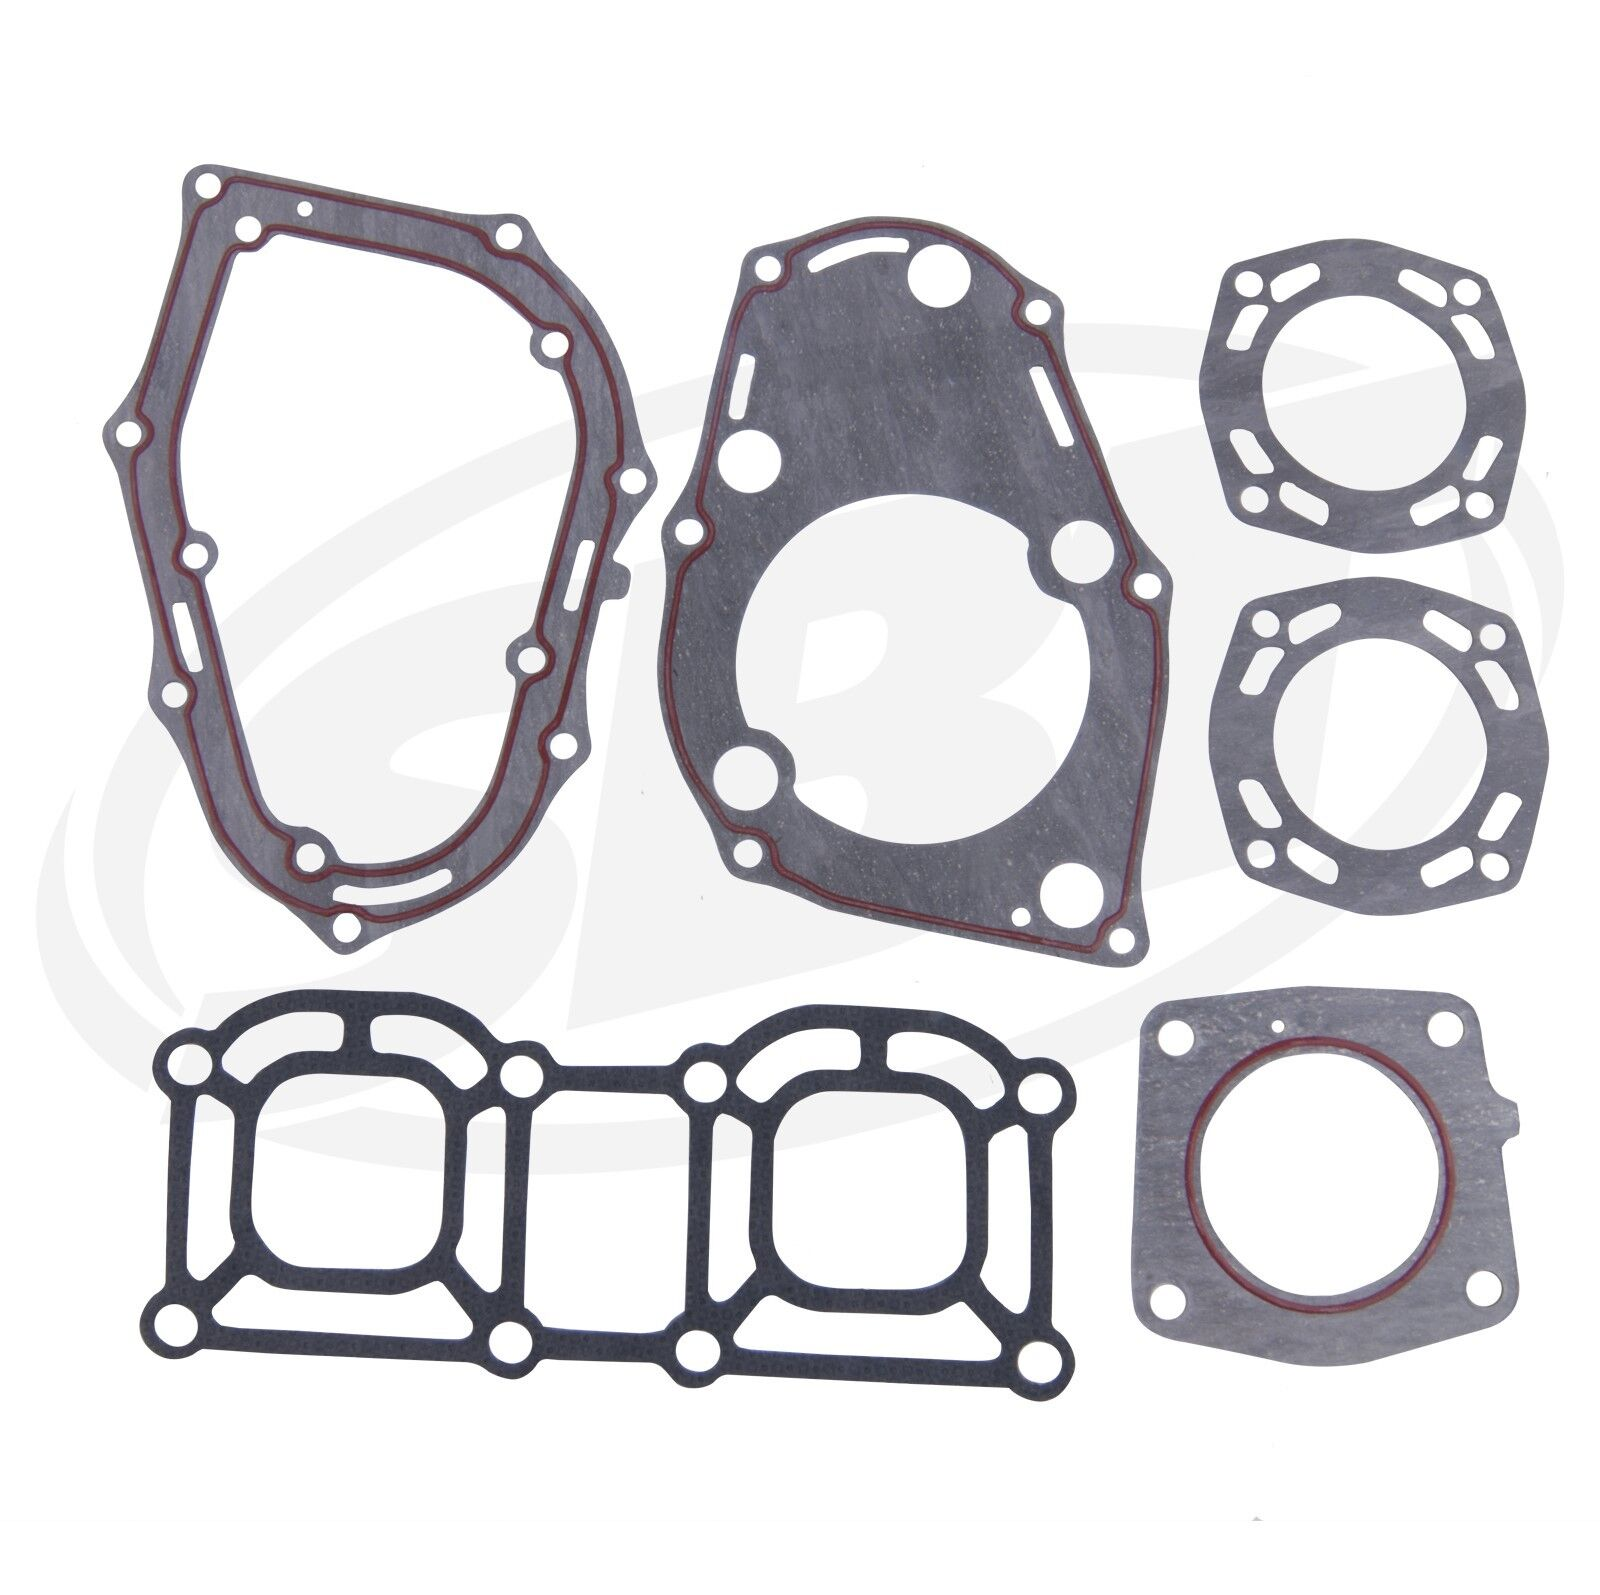 Yamaha Exhaust Gasket Kit 1990 1991 1992 1993 Wave Runner 650 LX